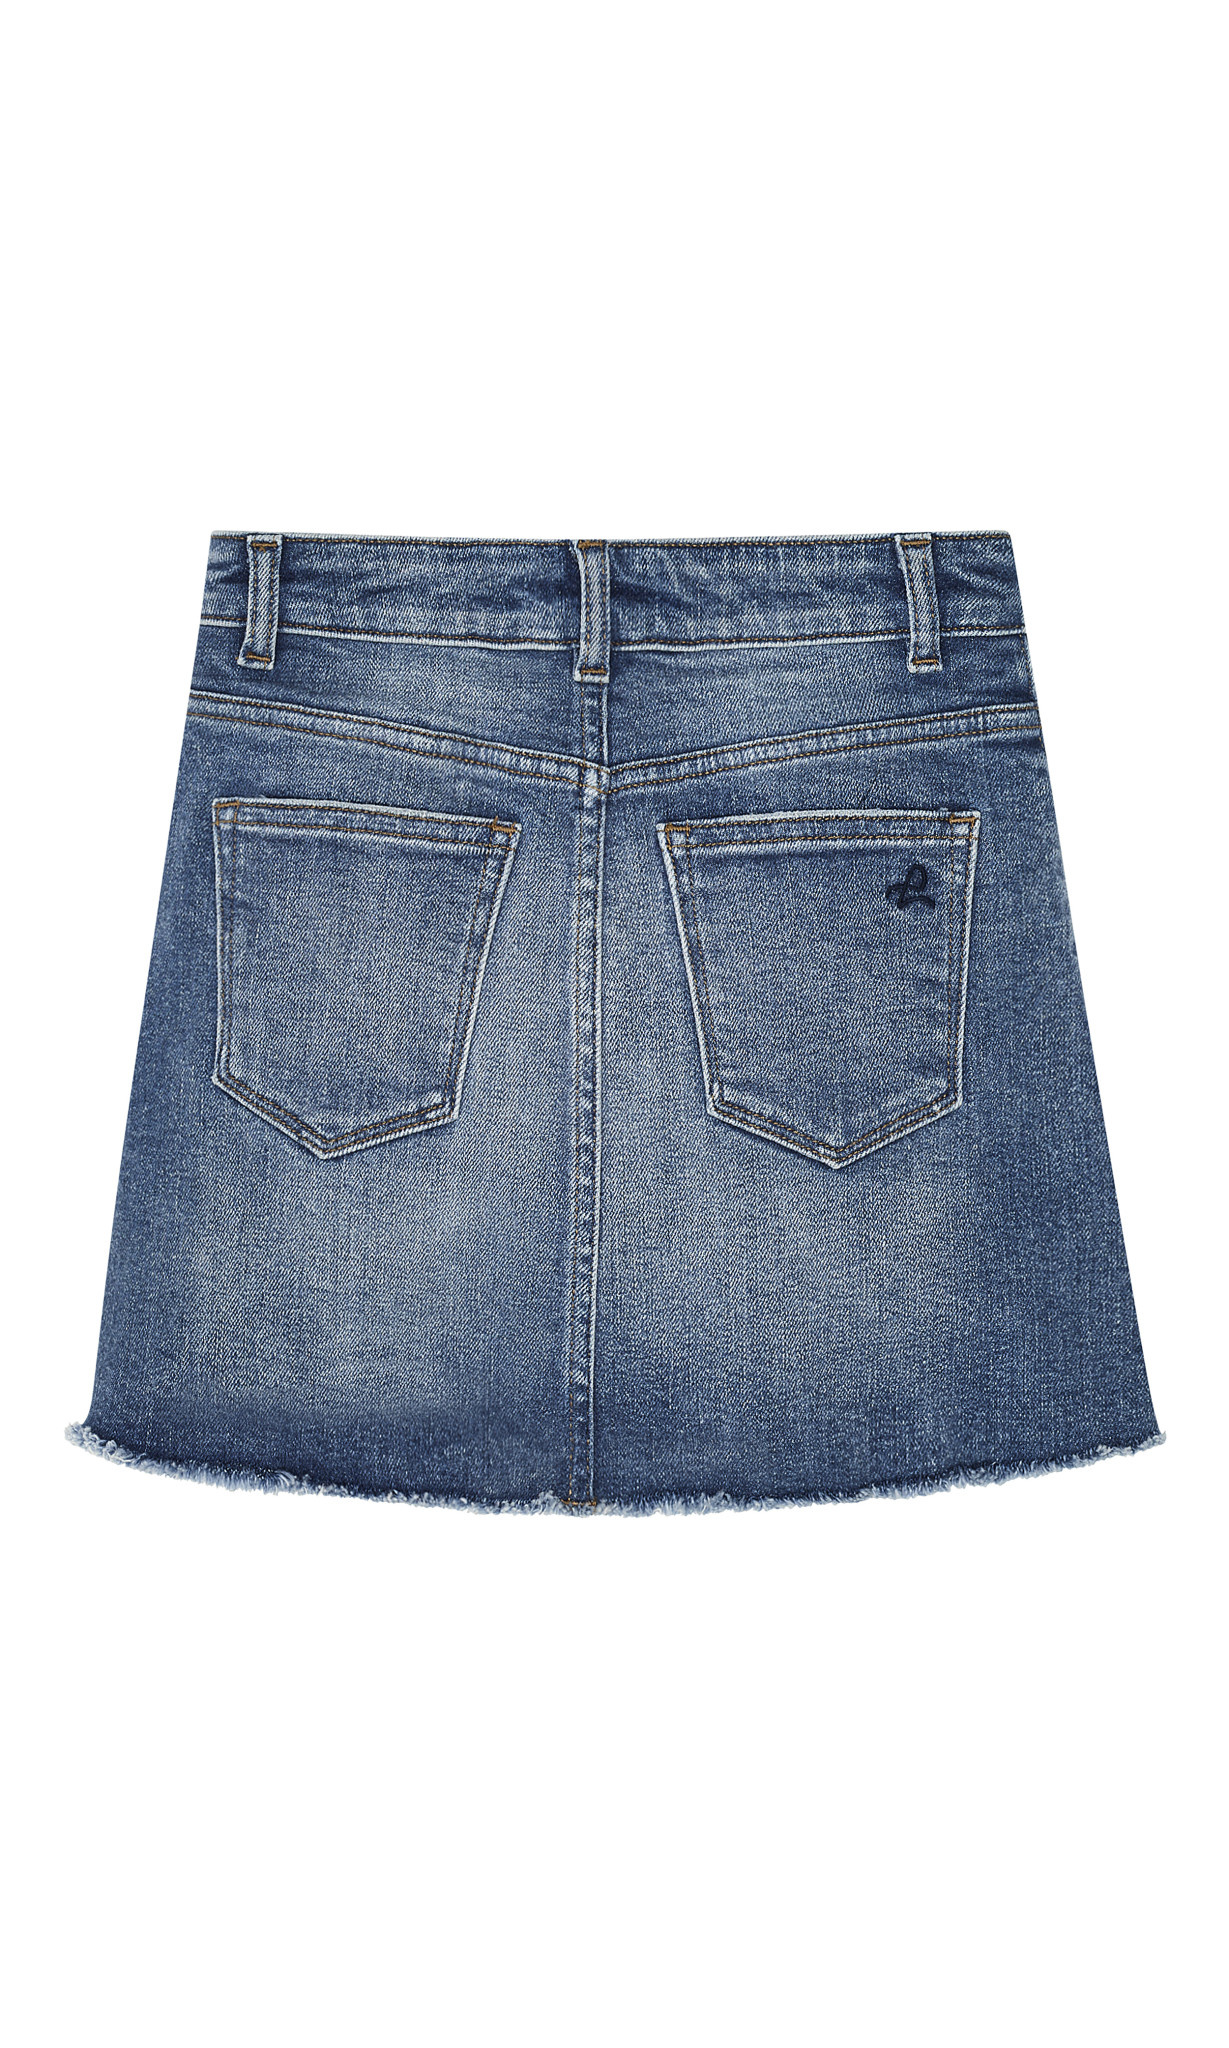 DL1961 Denim Jenny Skirt